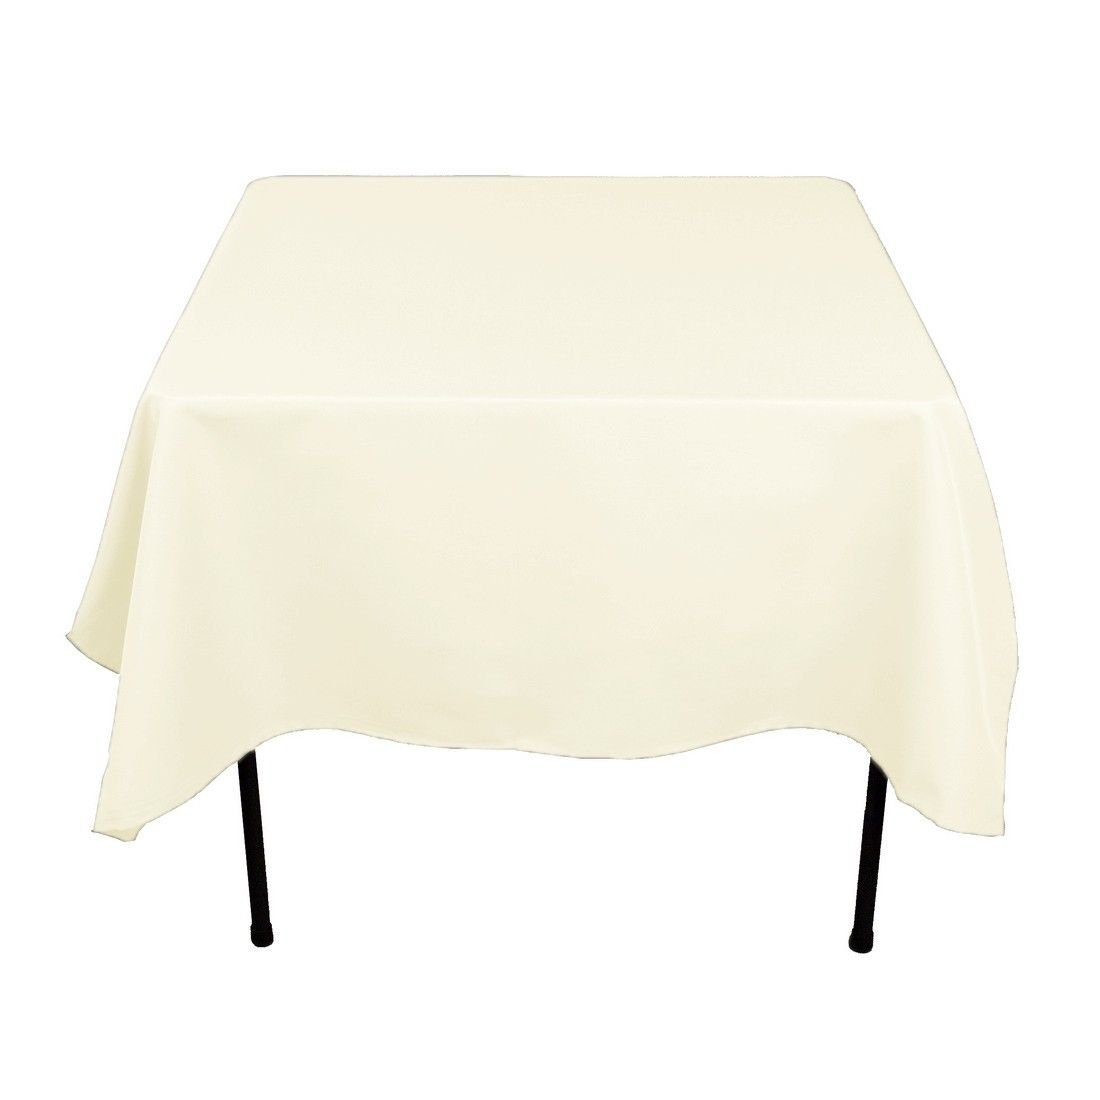 Gee Di Moda Square Tablecloth - 52 x 52 Inch - Baby Blue Square Table Cloth for Square or Round Tables in Washable Polyester - Great for Buffet Table, Parties, Holiday Dinner, Wedding & More GDMPSQ52BB